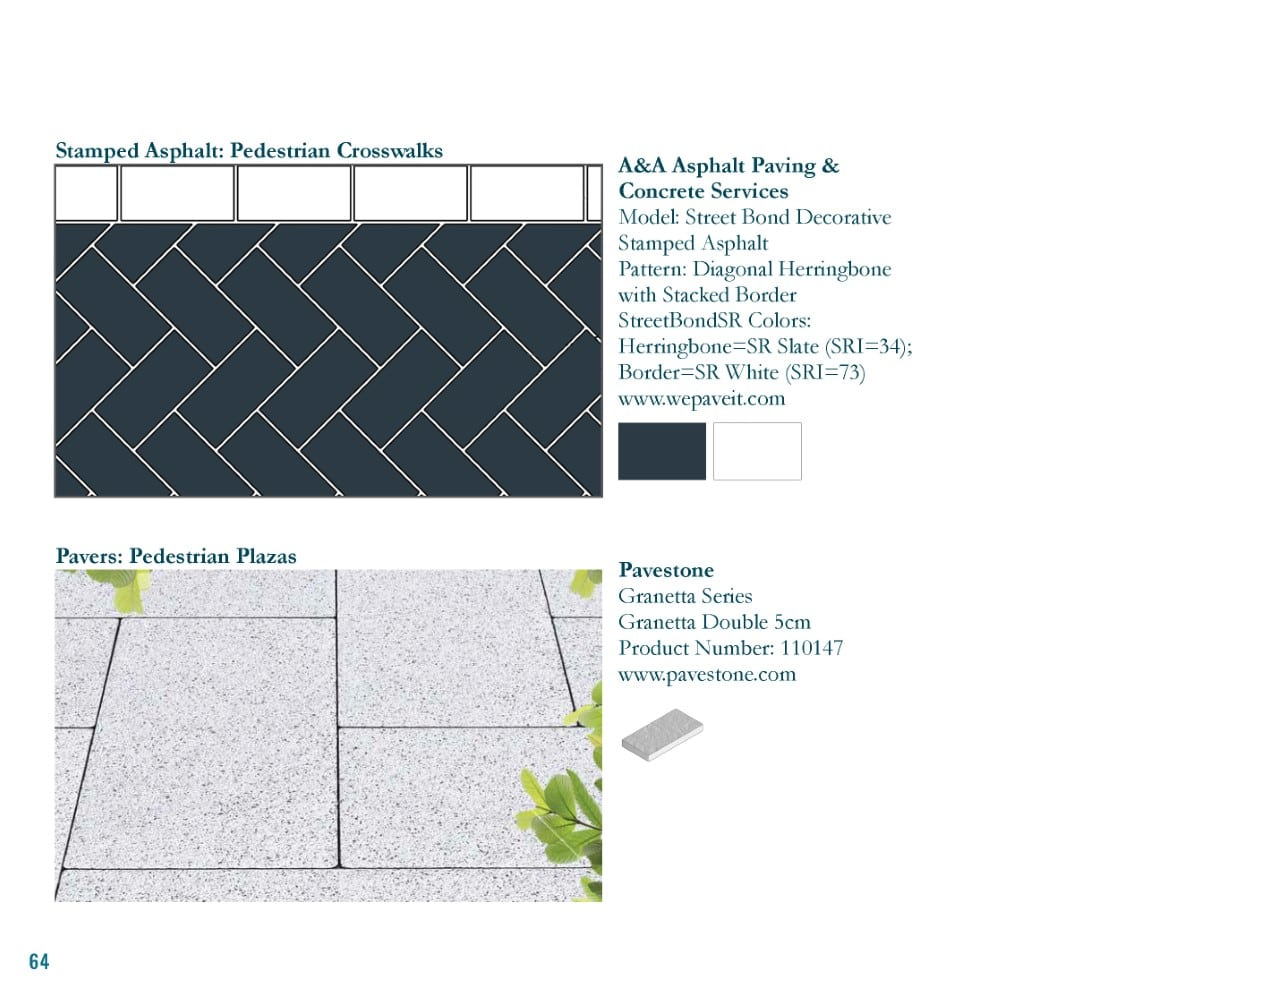 Rose & Main Brand Standards - Place Making